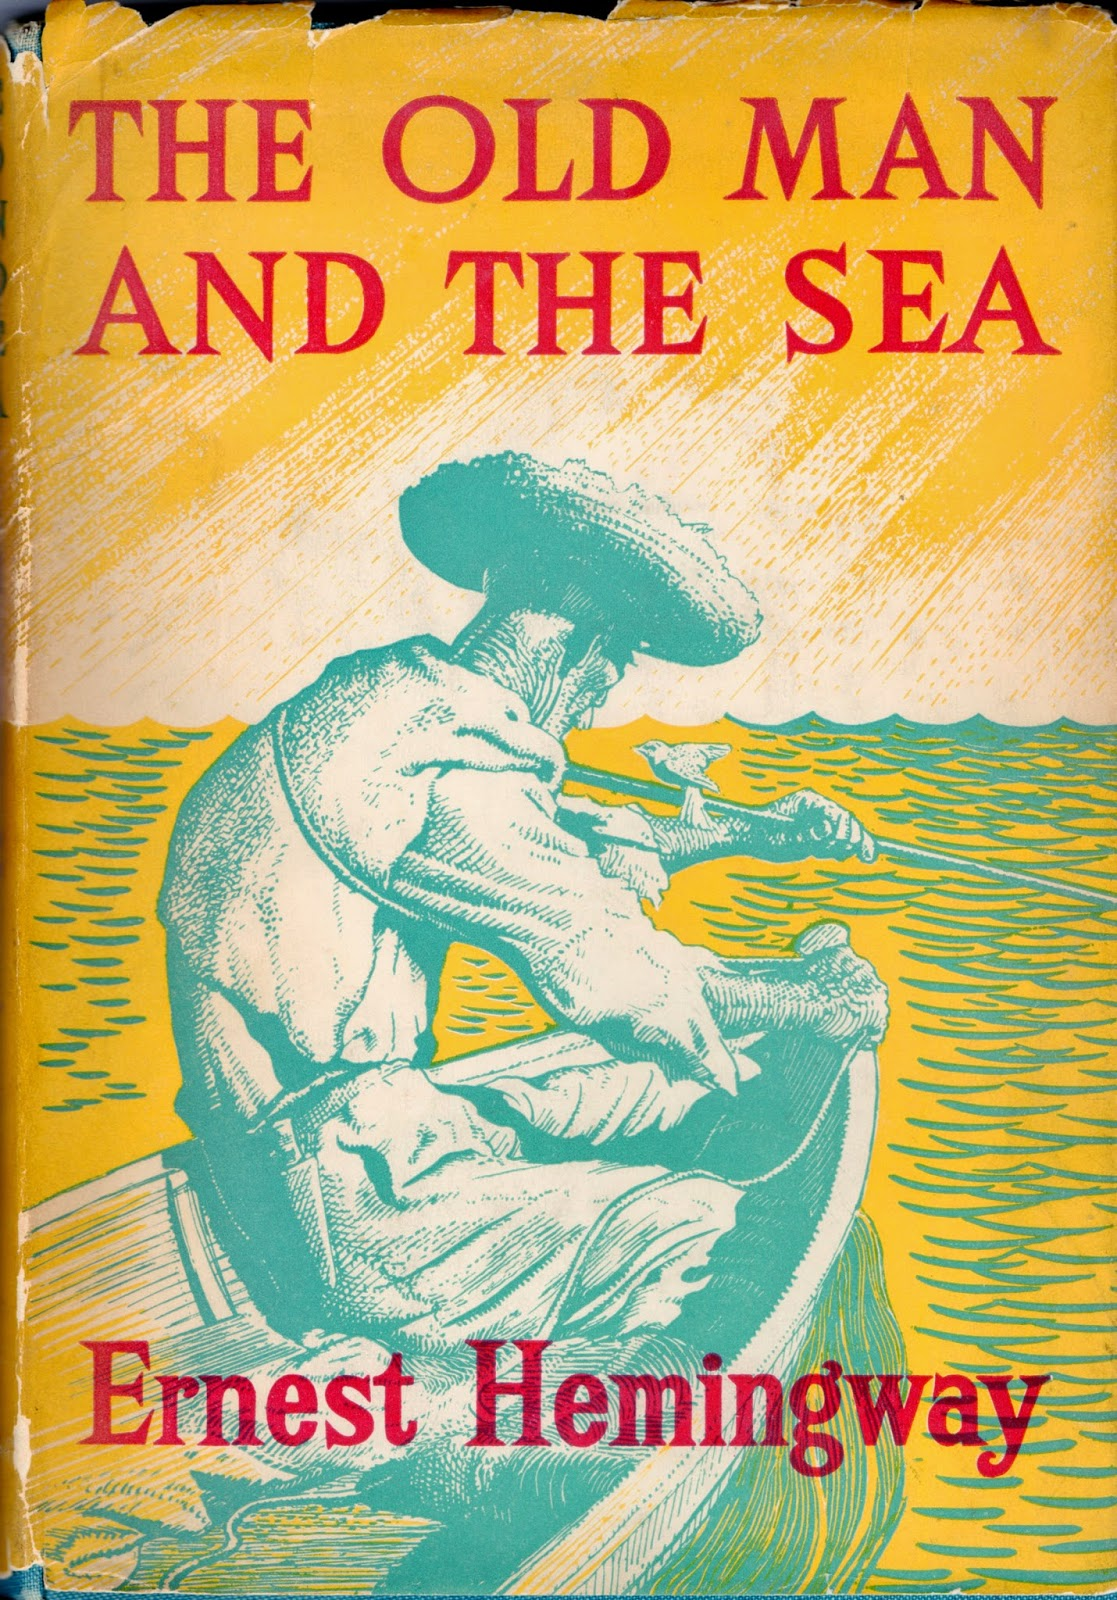 an analysis of perseverance in the old man and the sea by ernest hemingway The old man and the sea by ernest hemingway whole novel activity bundle activity bundle this is a very comprehensive bundle of instructional resources and activities related to the short story, the old man and the sea, by ernest hemingway.